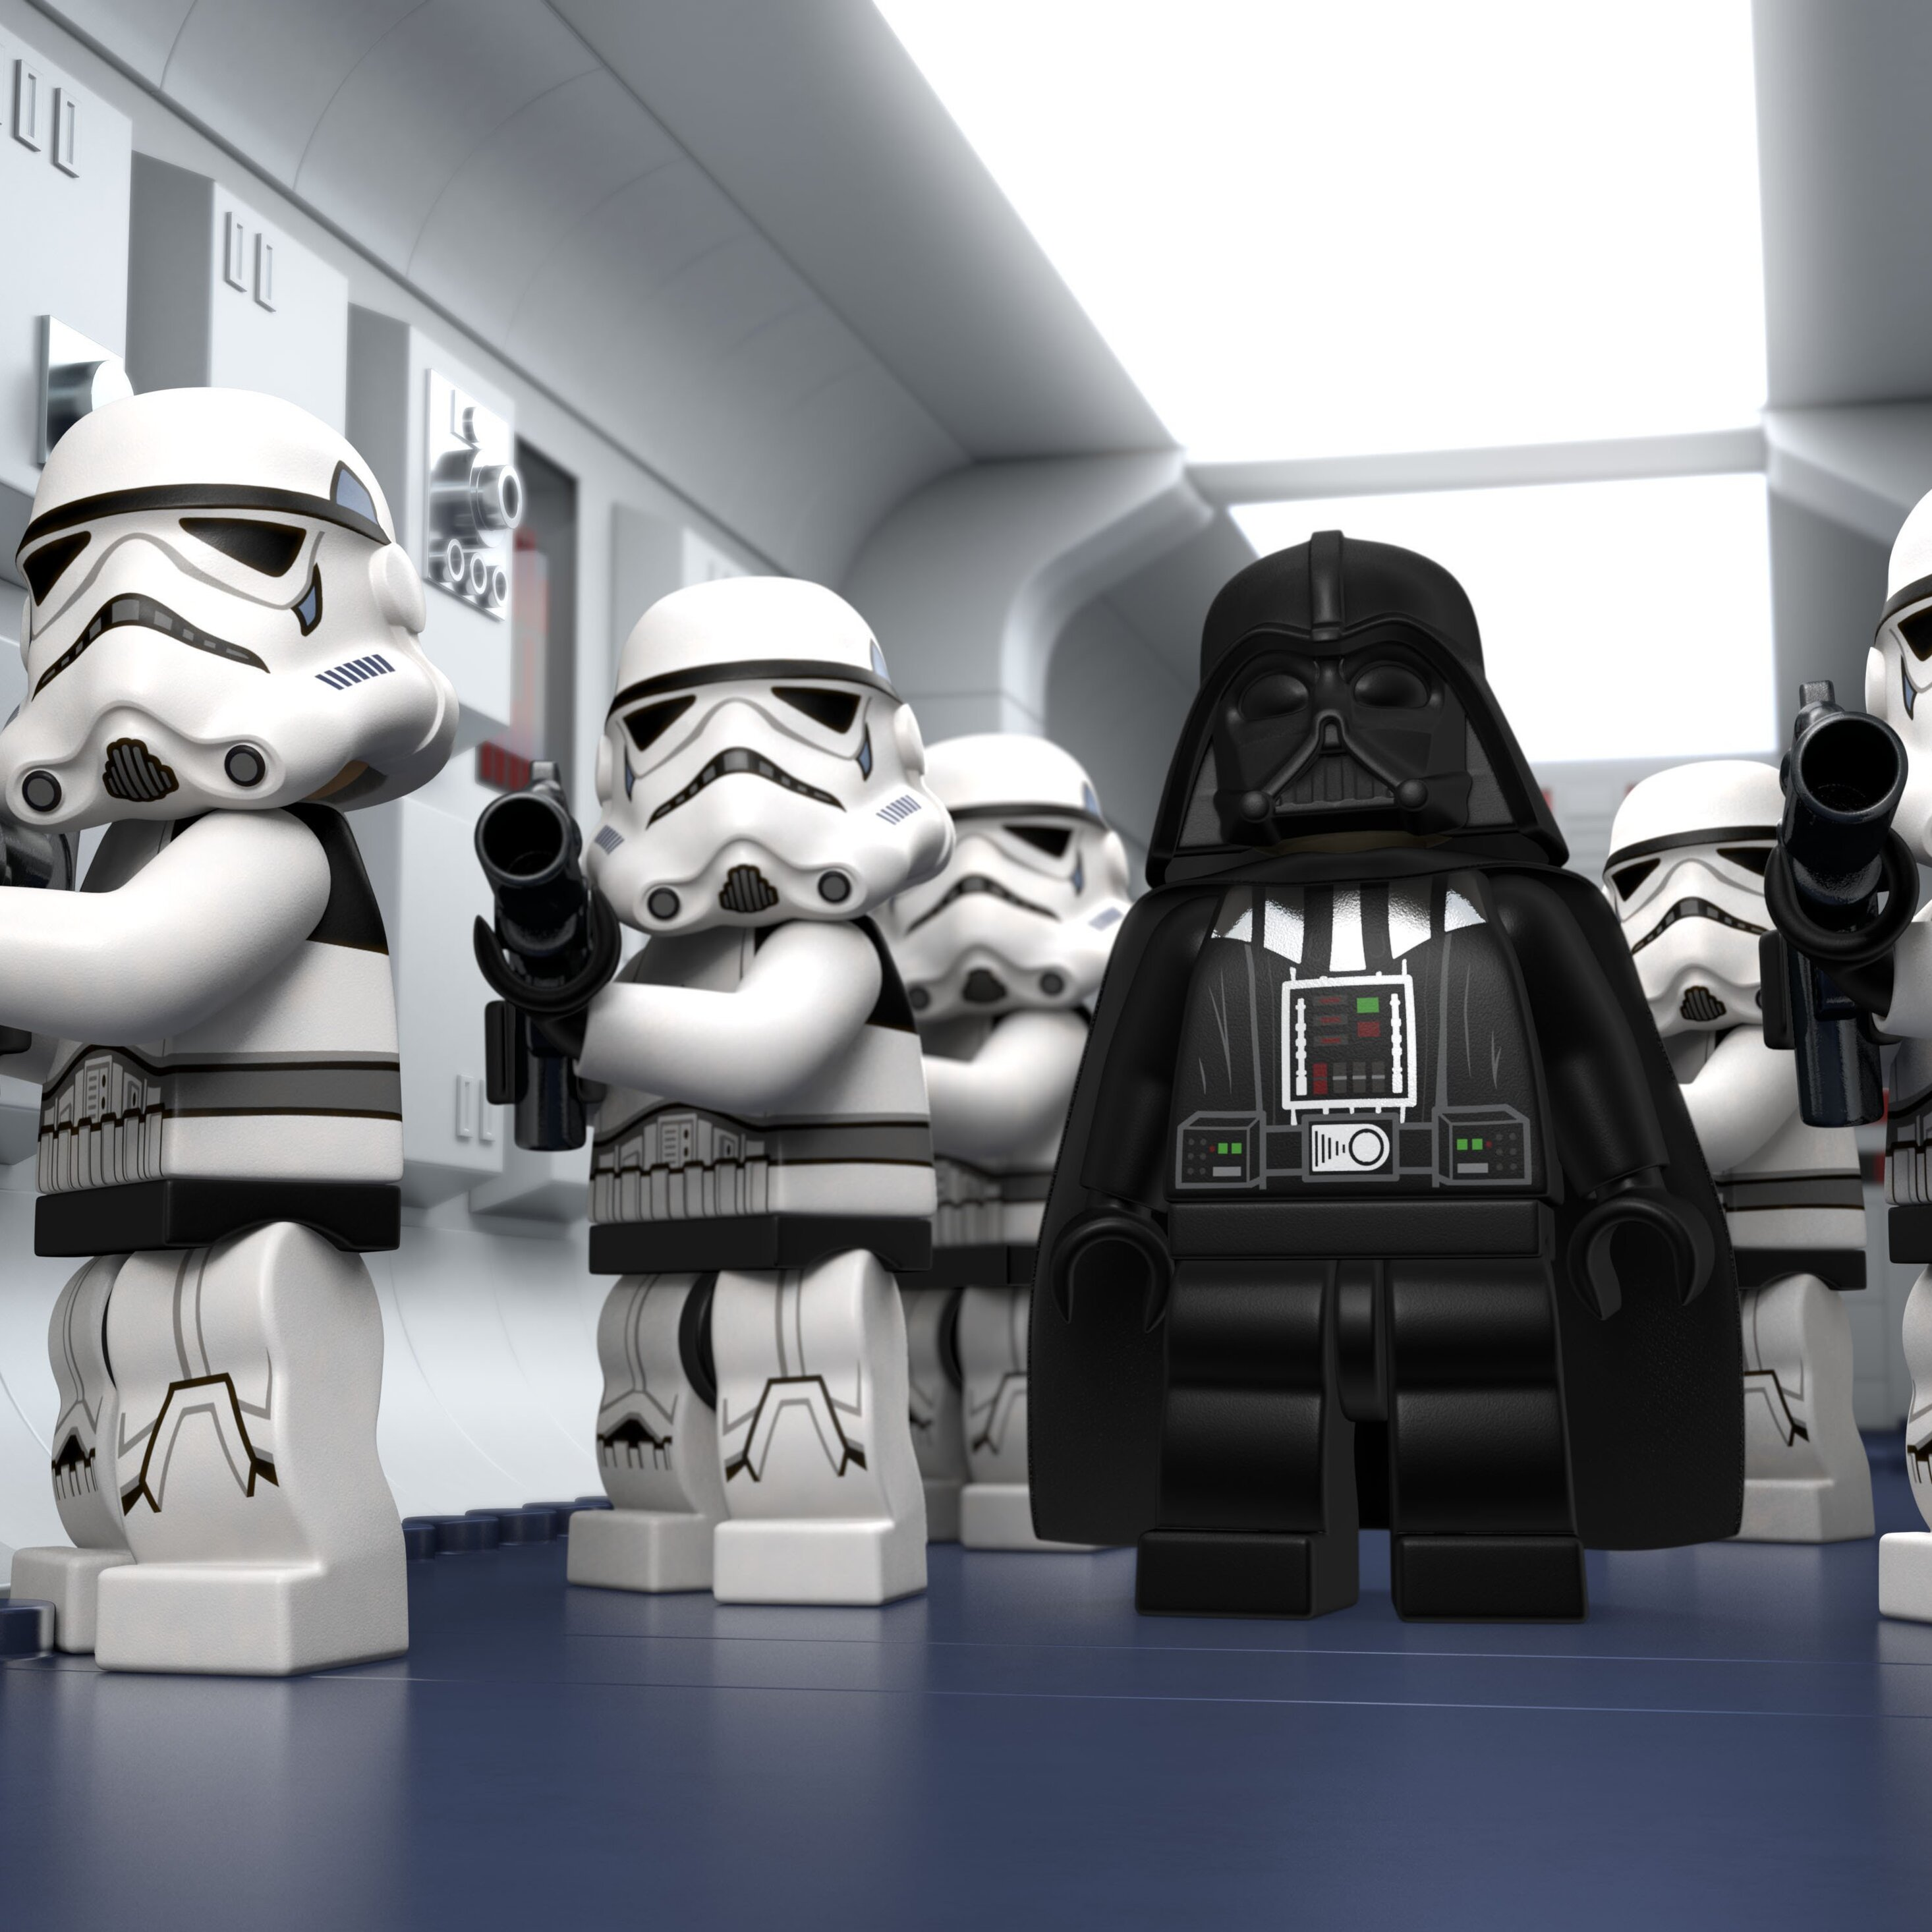 2932x2932 Lego Star Wars Droid Tales Stormtrooper Ipad Pro Retina Display Hd 4k Wallpapers Images Backgrounds Photos And Pictures